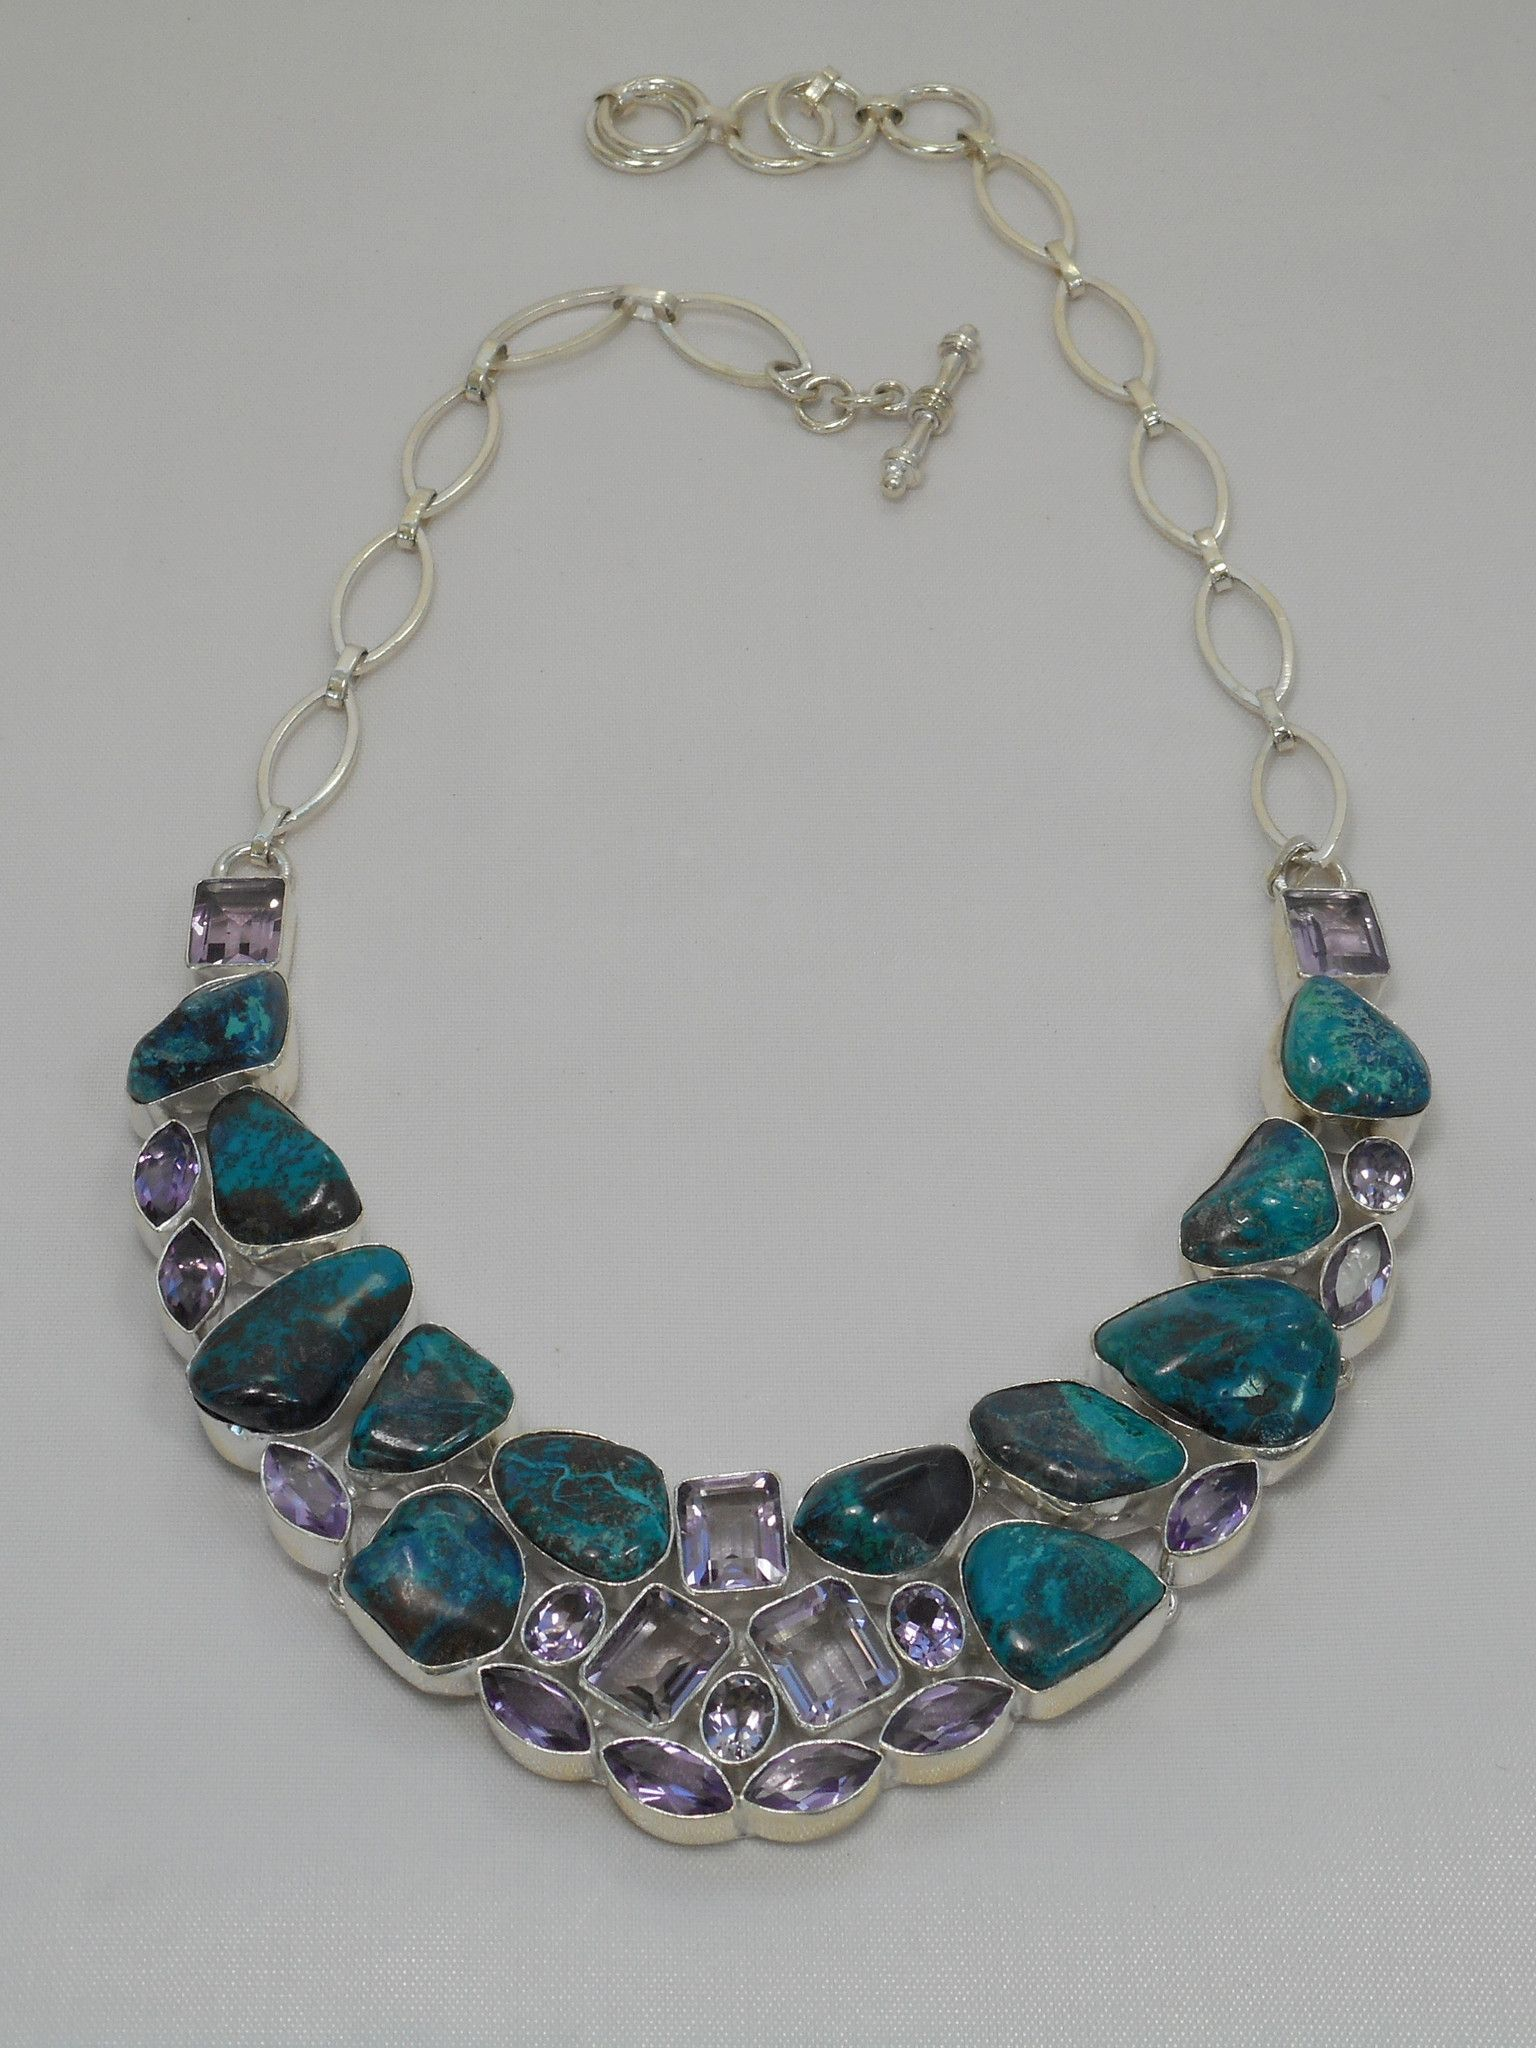 Chrysicolla Gemstones Necklace 1 with Amethyst